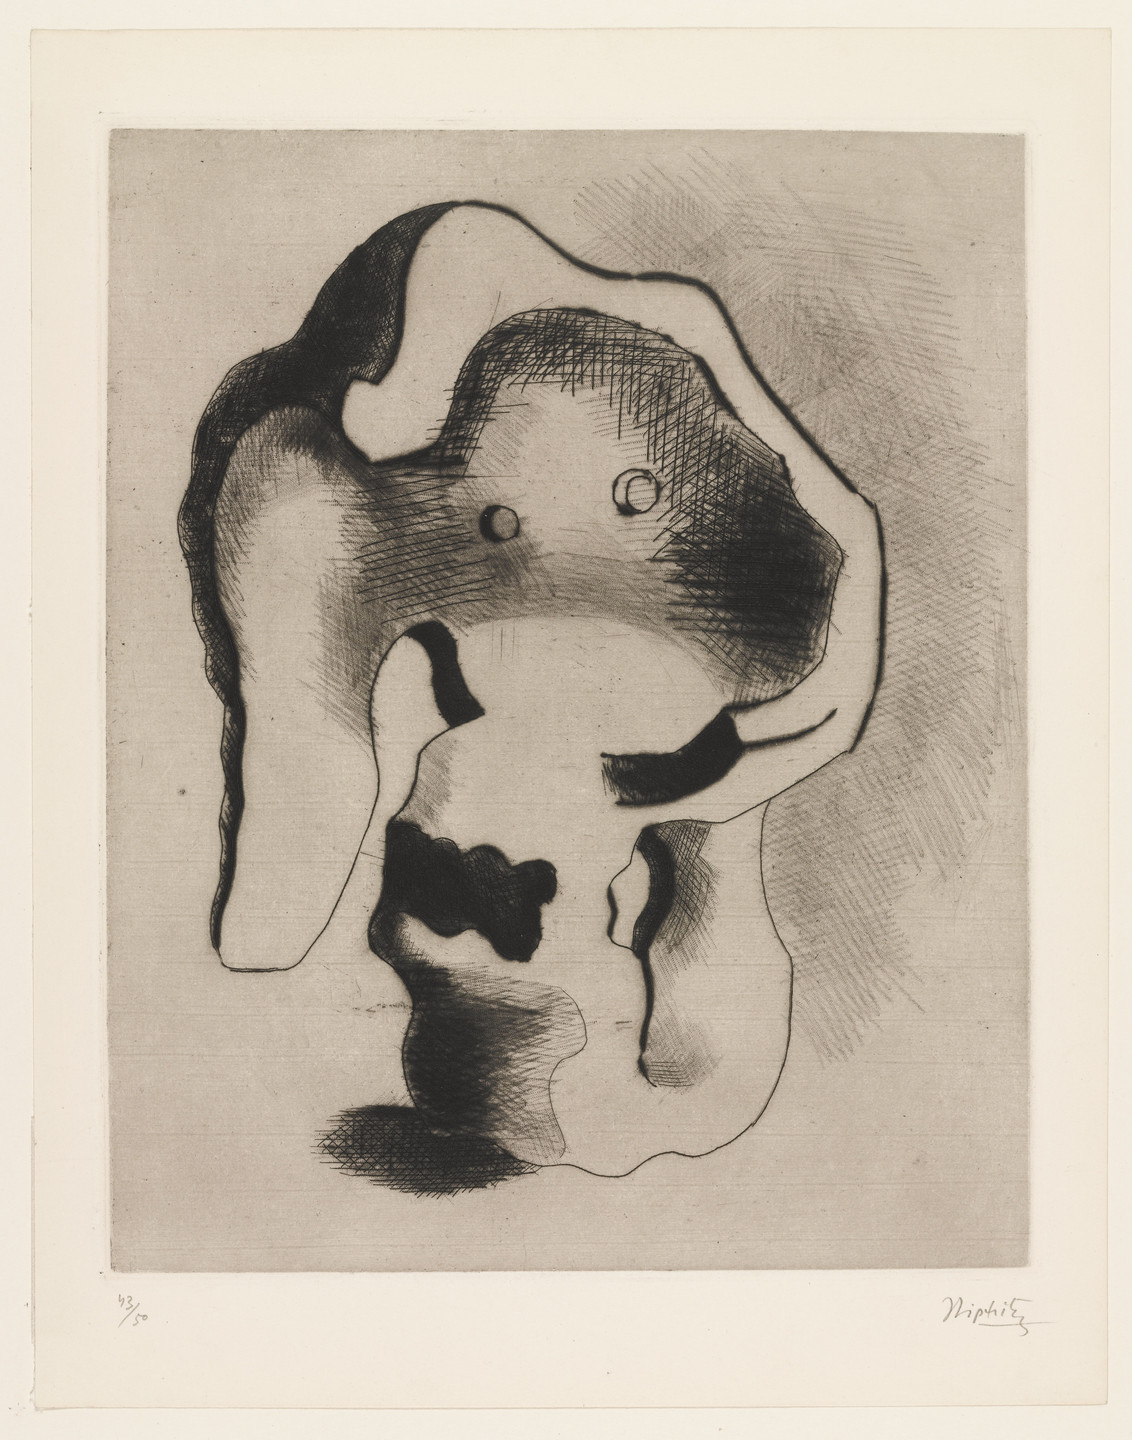 Jacques Lipchitz. Plate (folio 29) from 23 Gravures. 1935